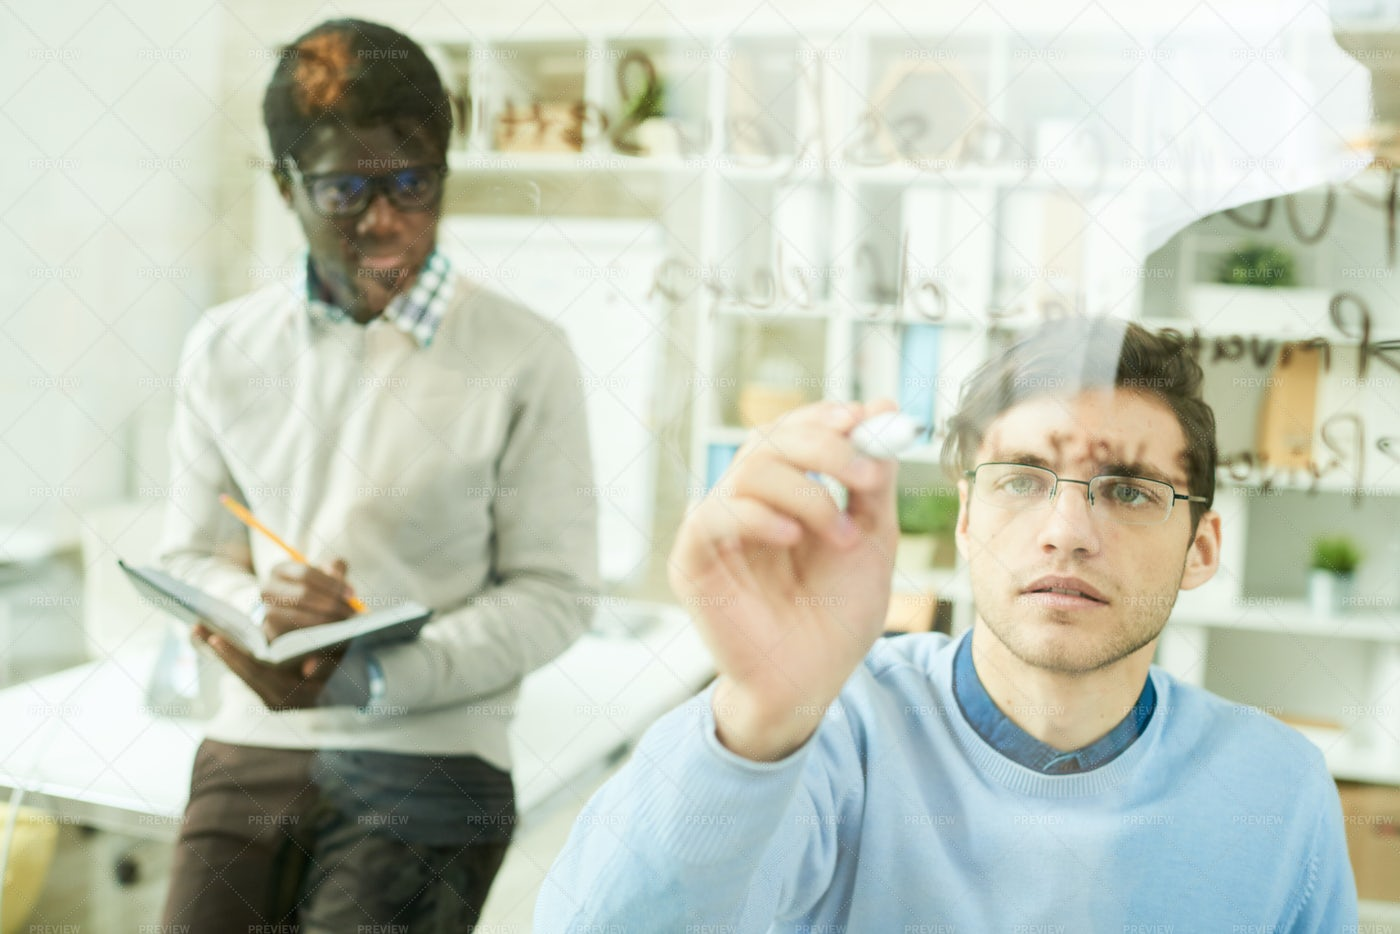 IT Developers Writing On Glass Wall: Stock Photos